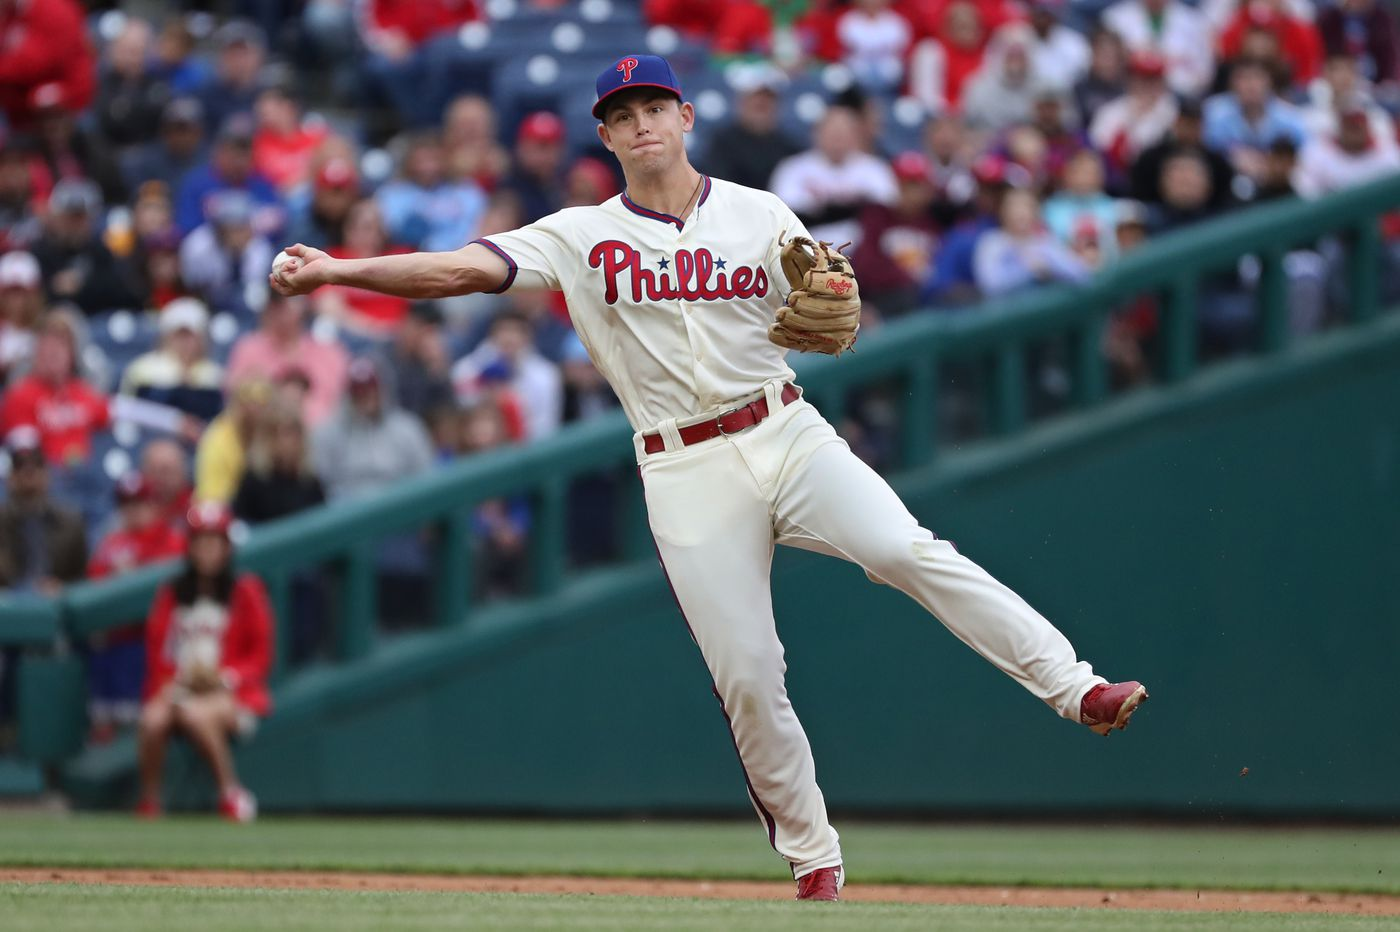 Phillies' Scott Kingery leaves Friday's game with hamstring issue just as team started finding ways to keep him in lineup